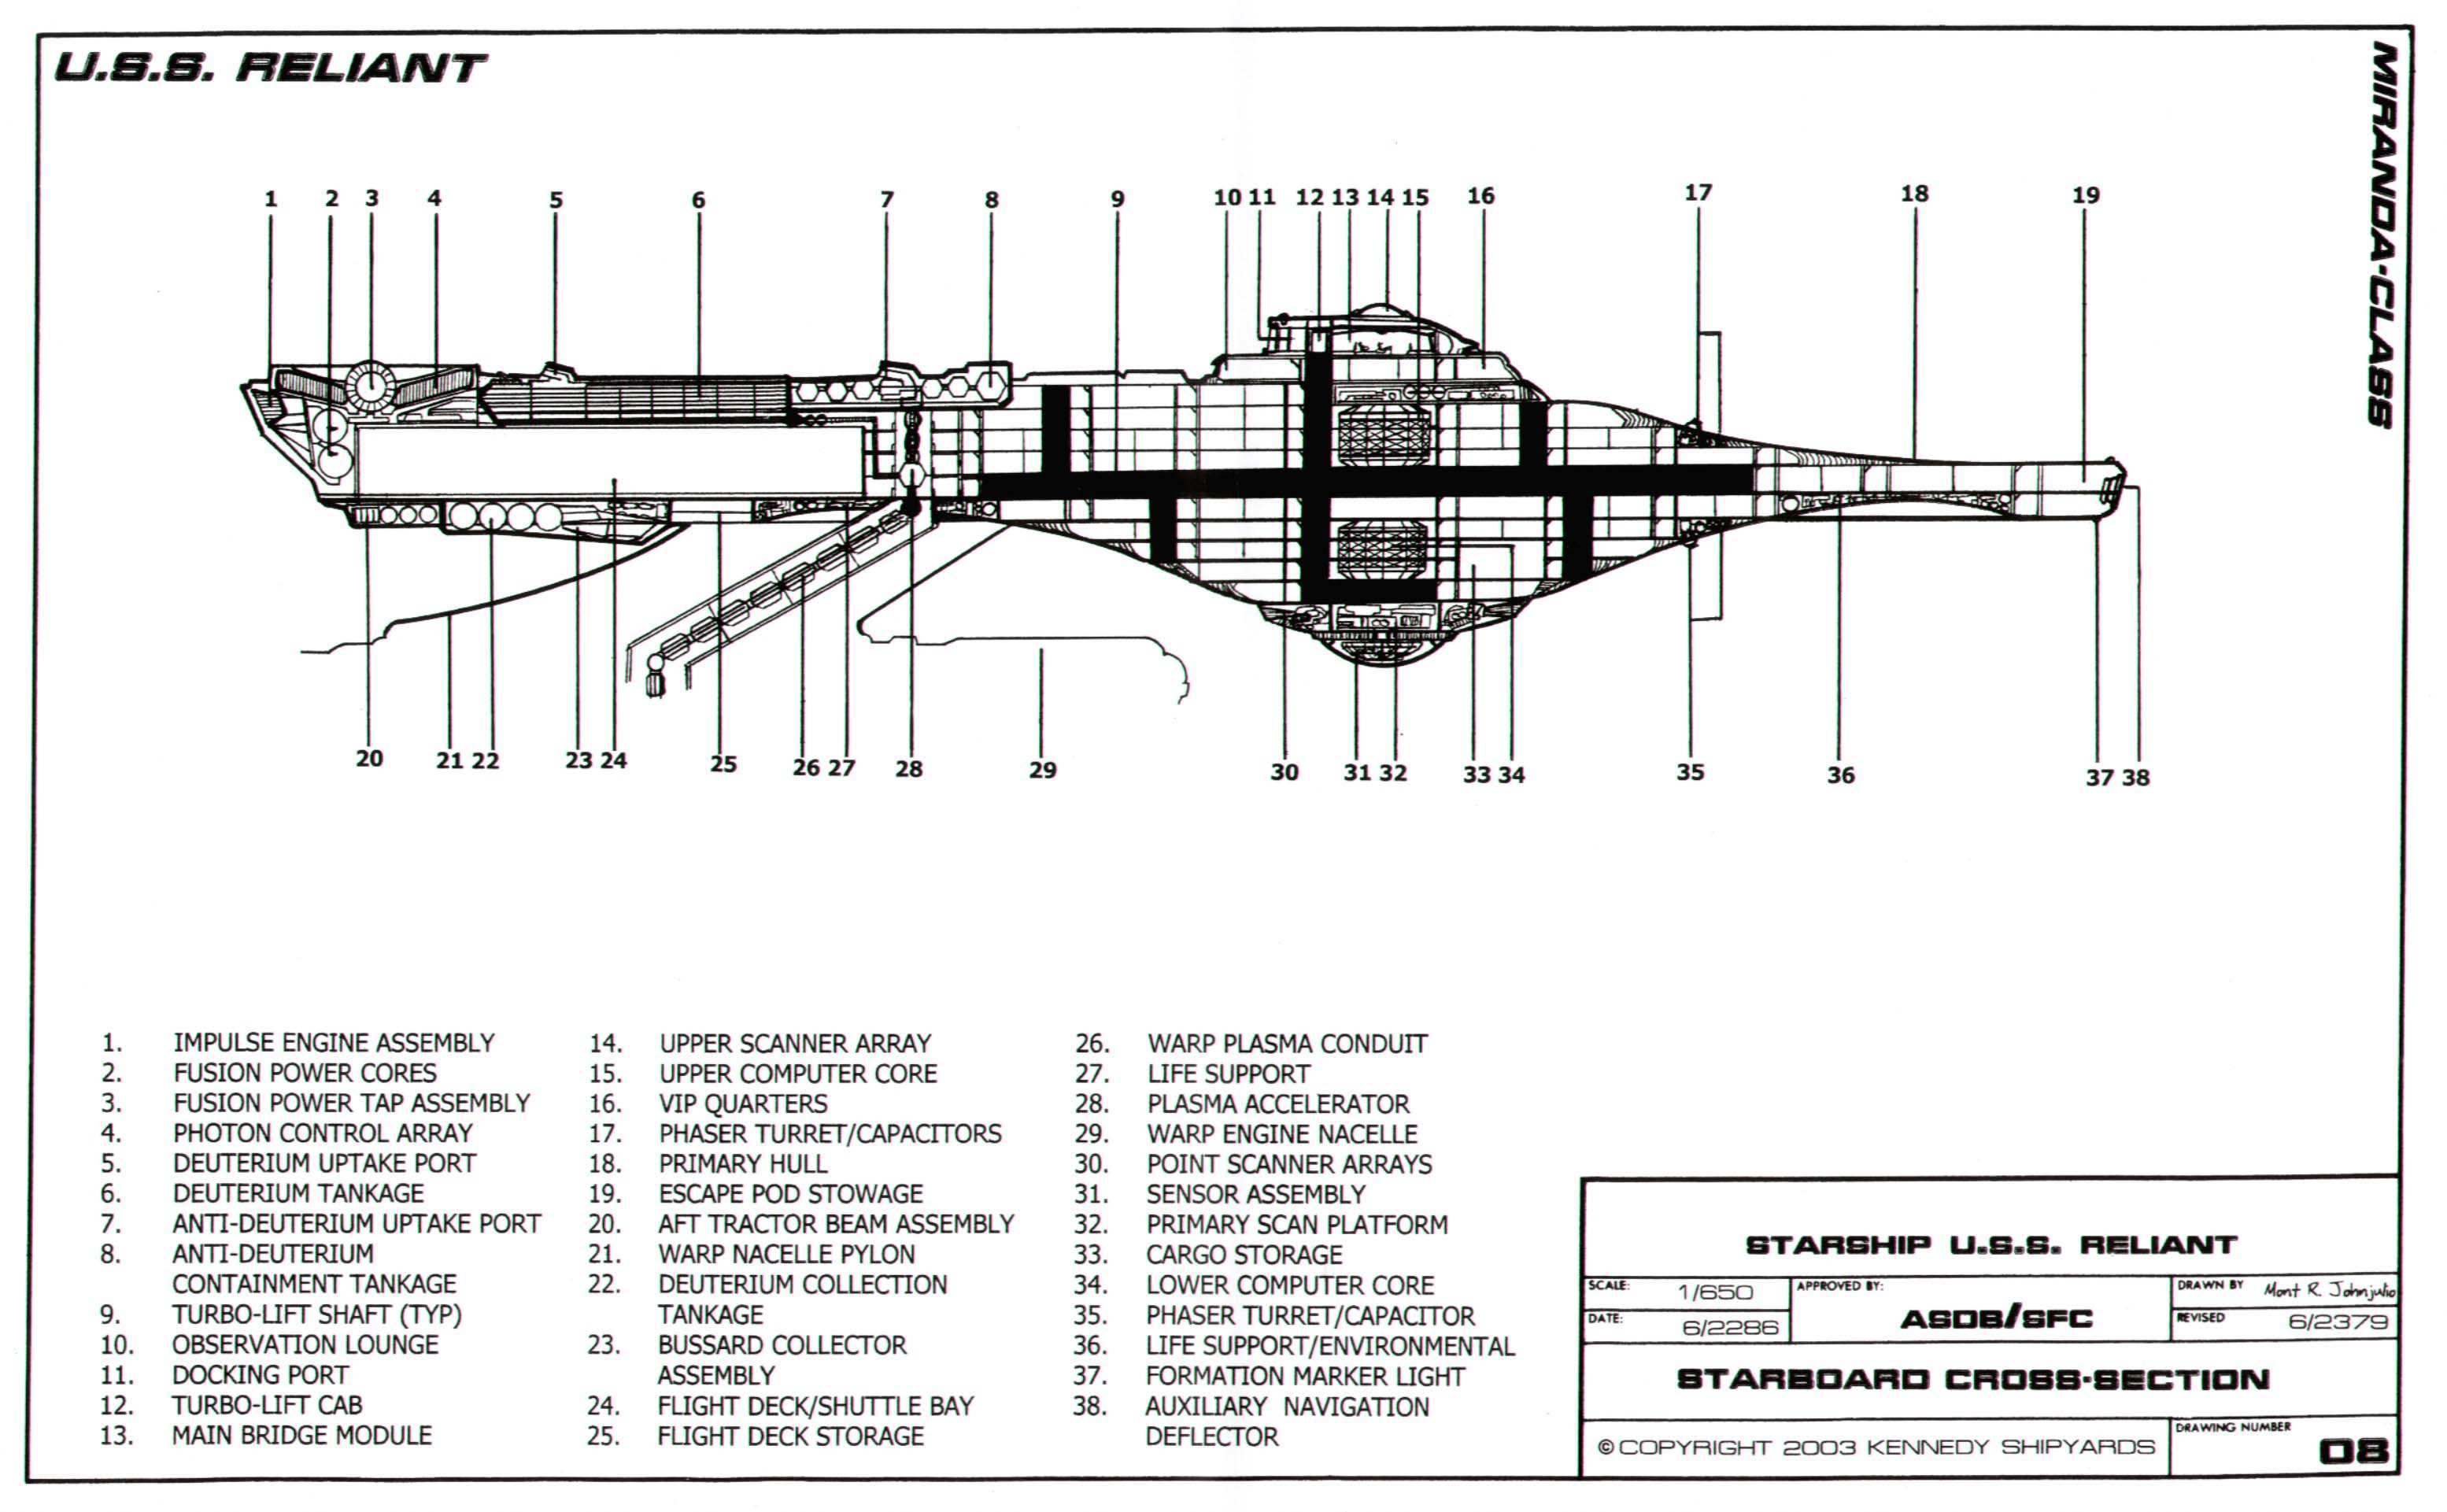 Images About Cross Sections